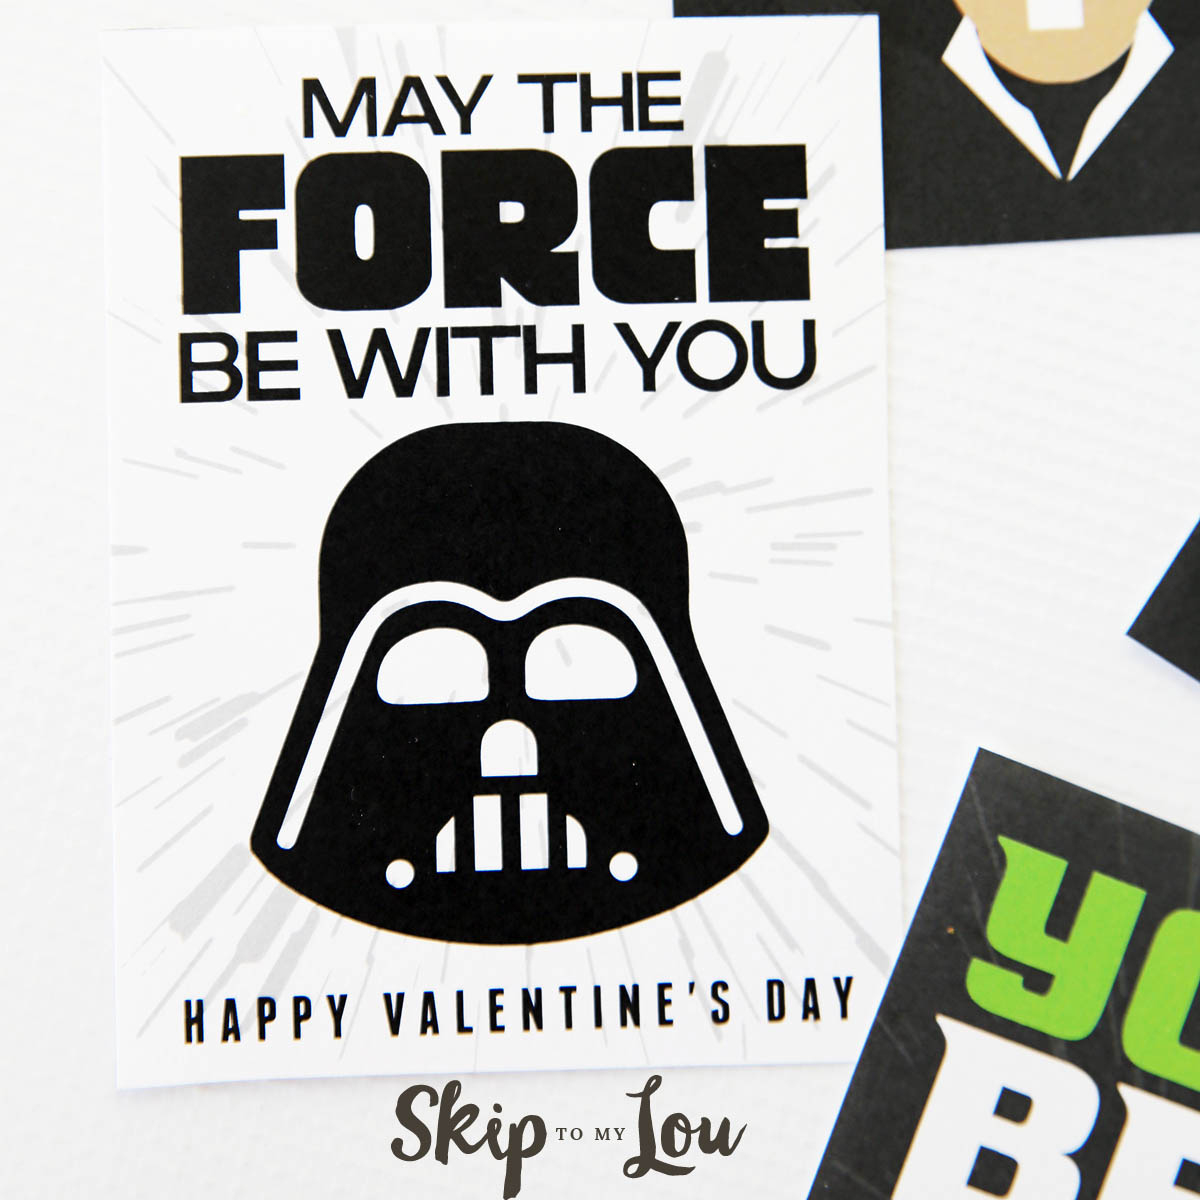 The Best Free Printable Star Wars Valentines - So Cool! | Skip To My Lou - May The Force Be With You Free Printable